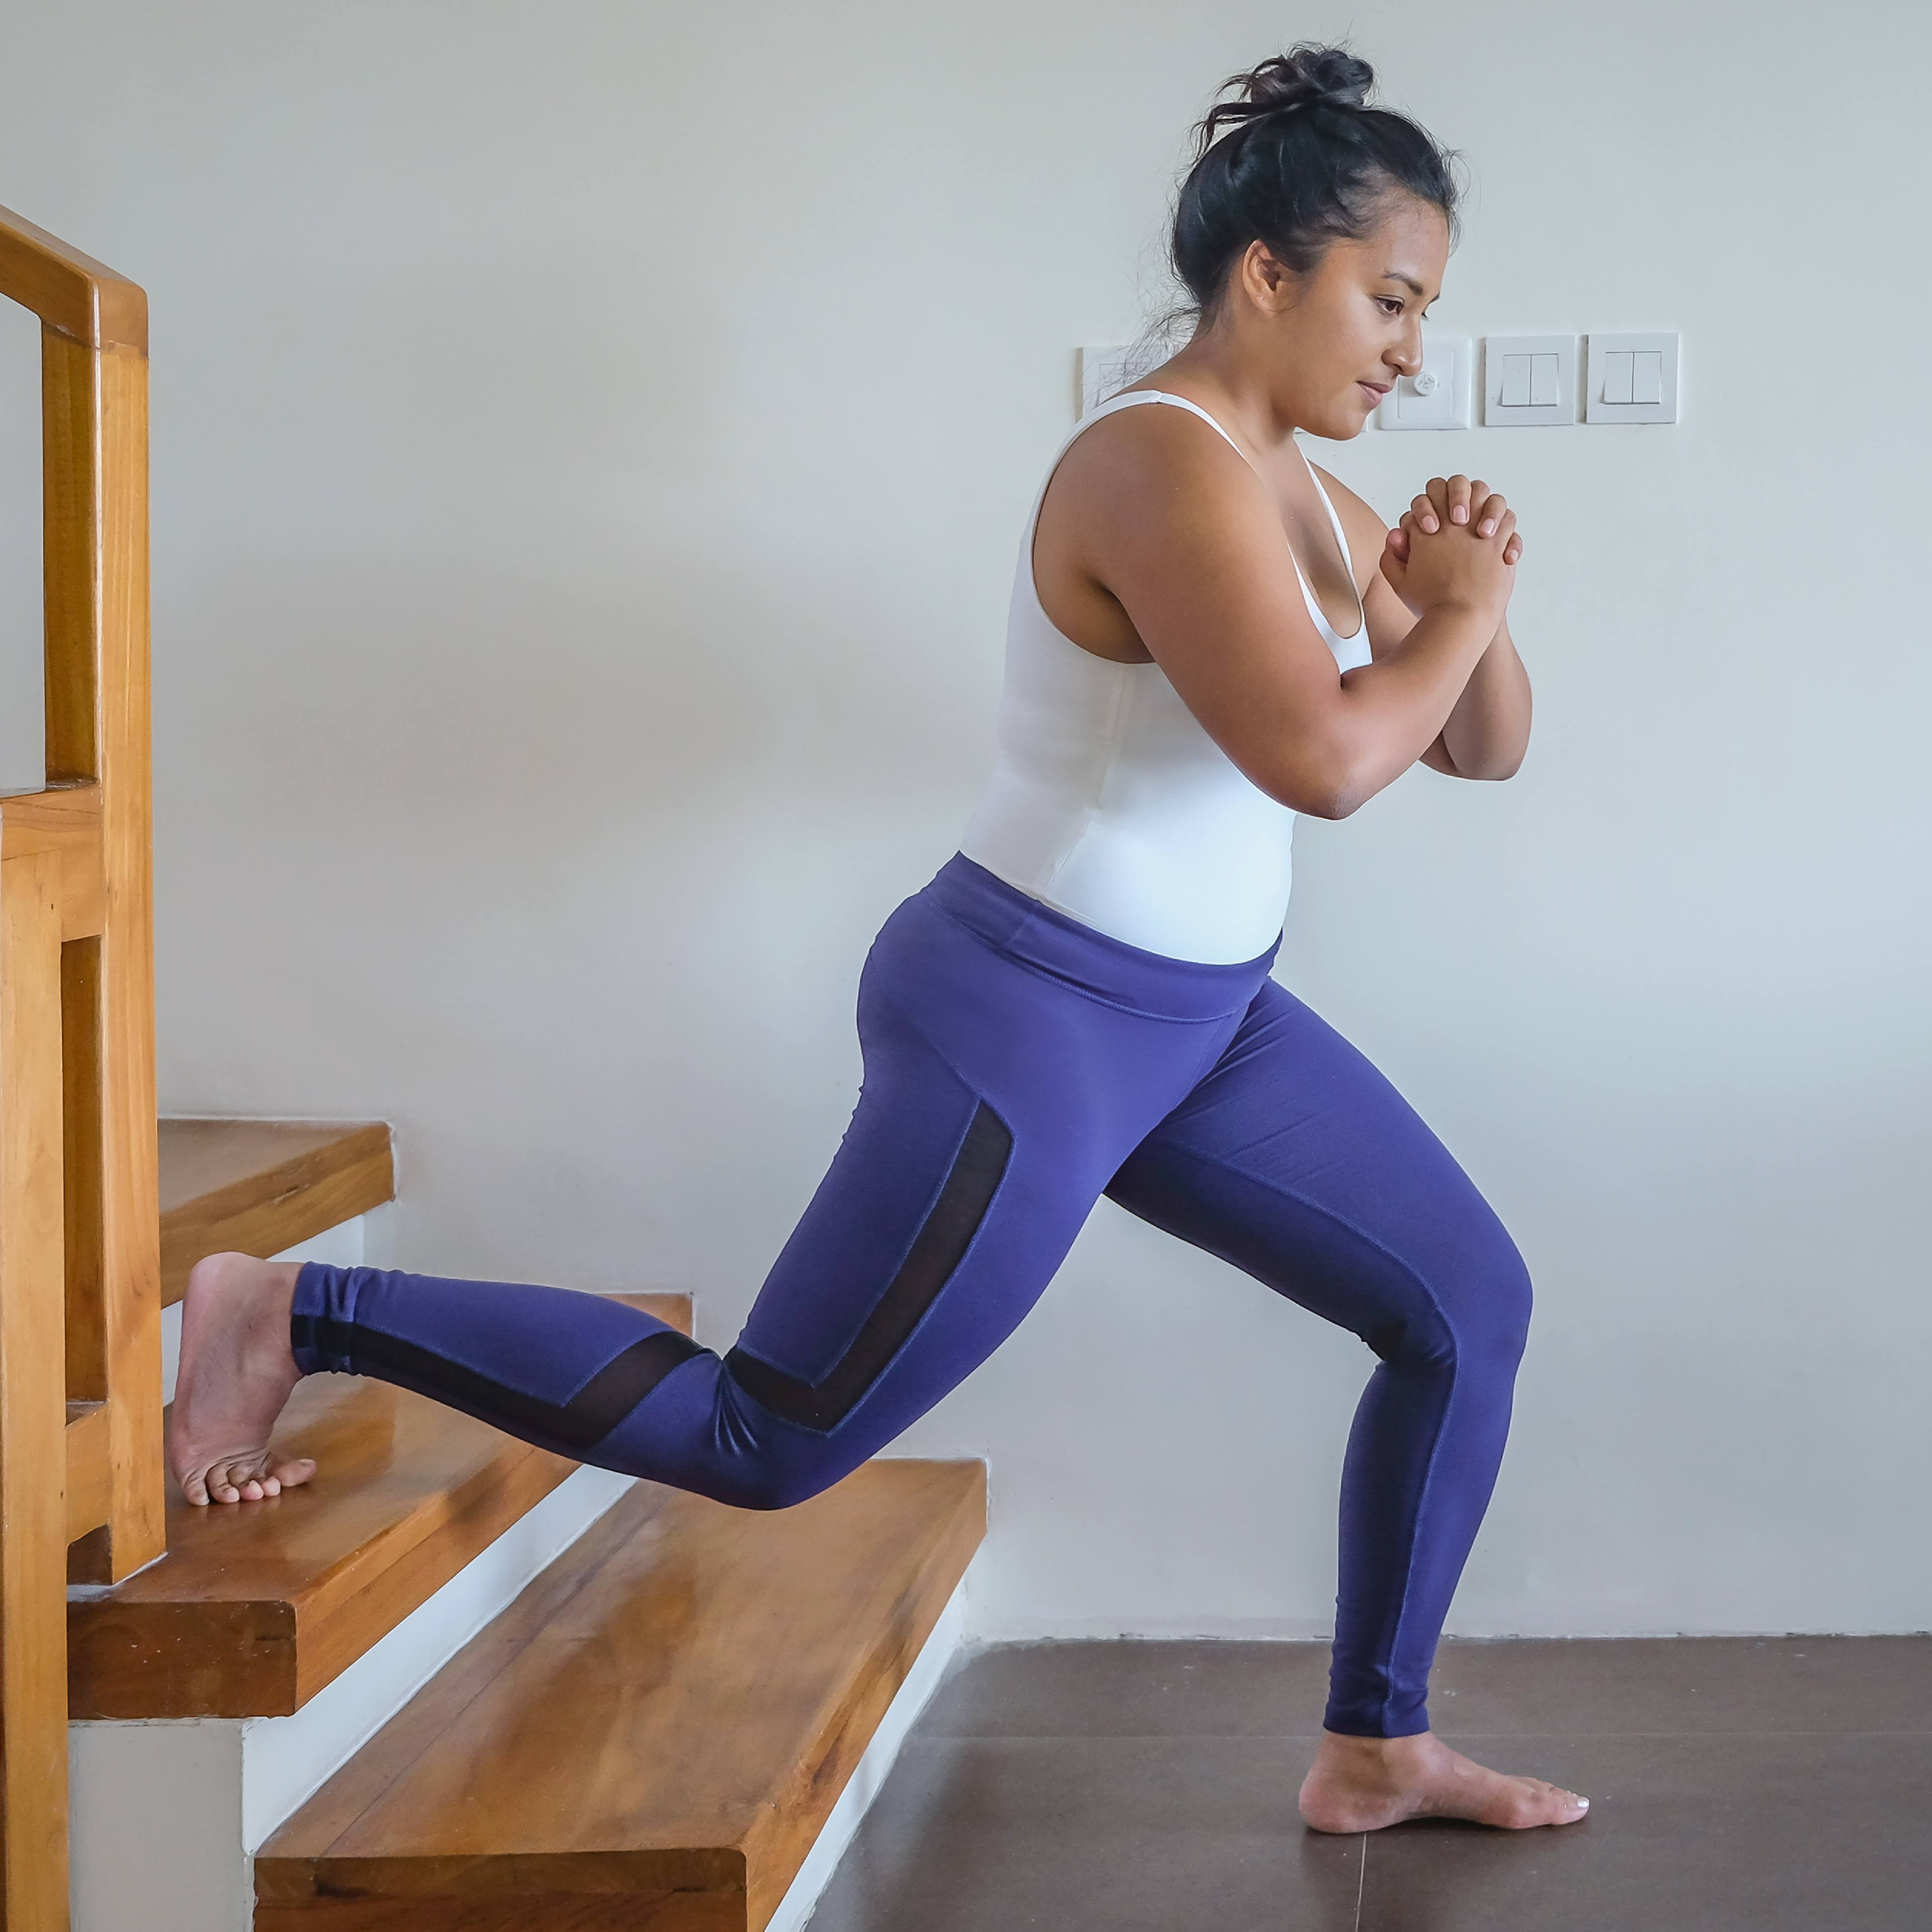 a young woman, perhaps Latina or Asian, in workout clothes exercising on her stairs at home